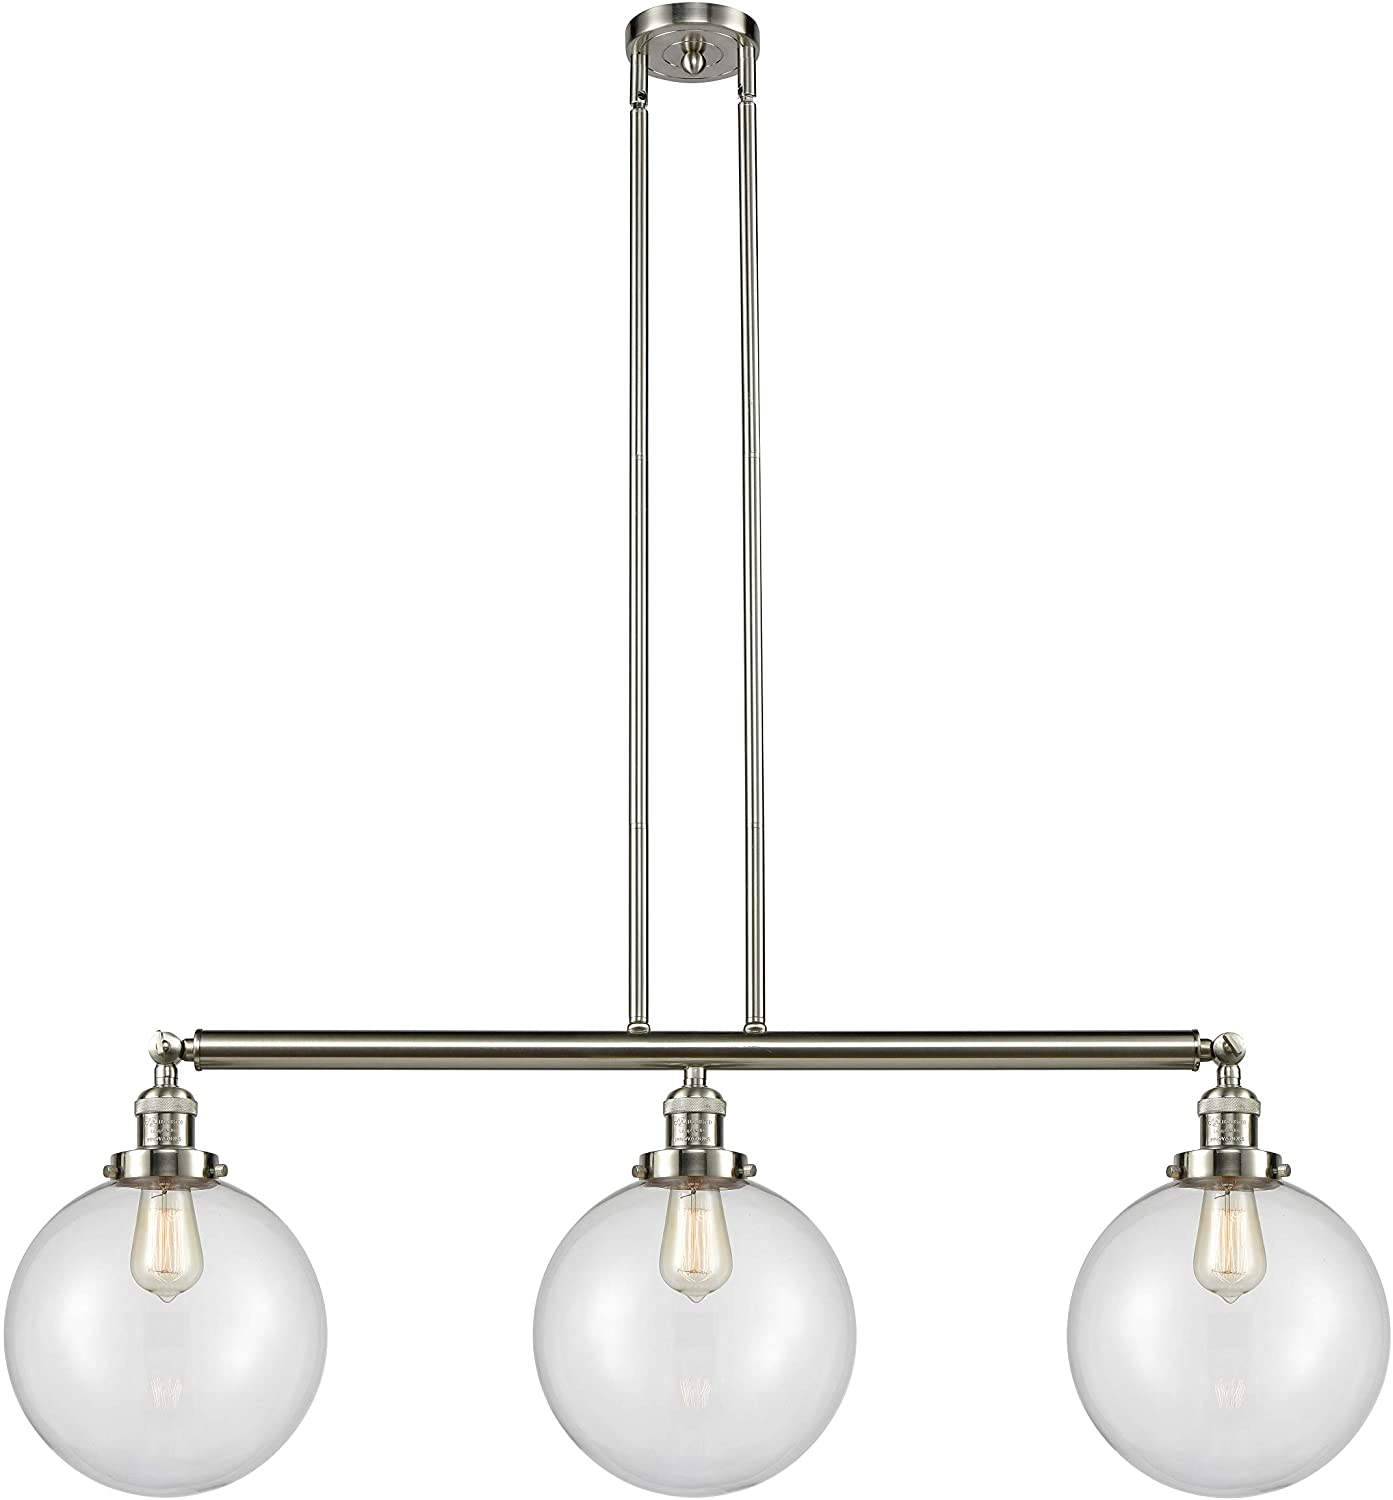 Innovations 213-SN-S-G202-10 X-Large Beacon 3 Island Light Part of The Franklin Restoration Collection, Brushed Satin Nickel